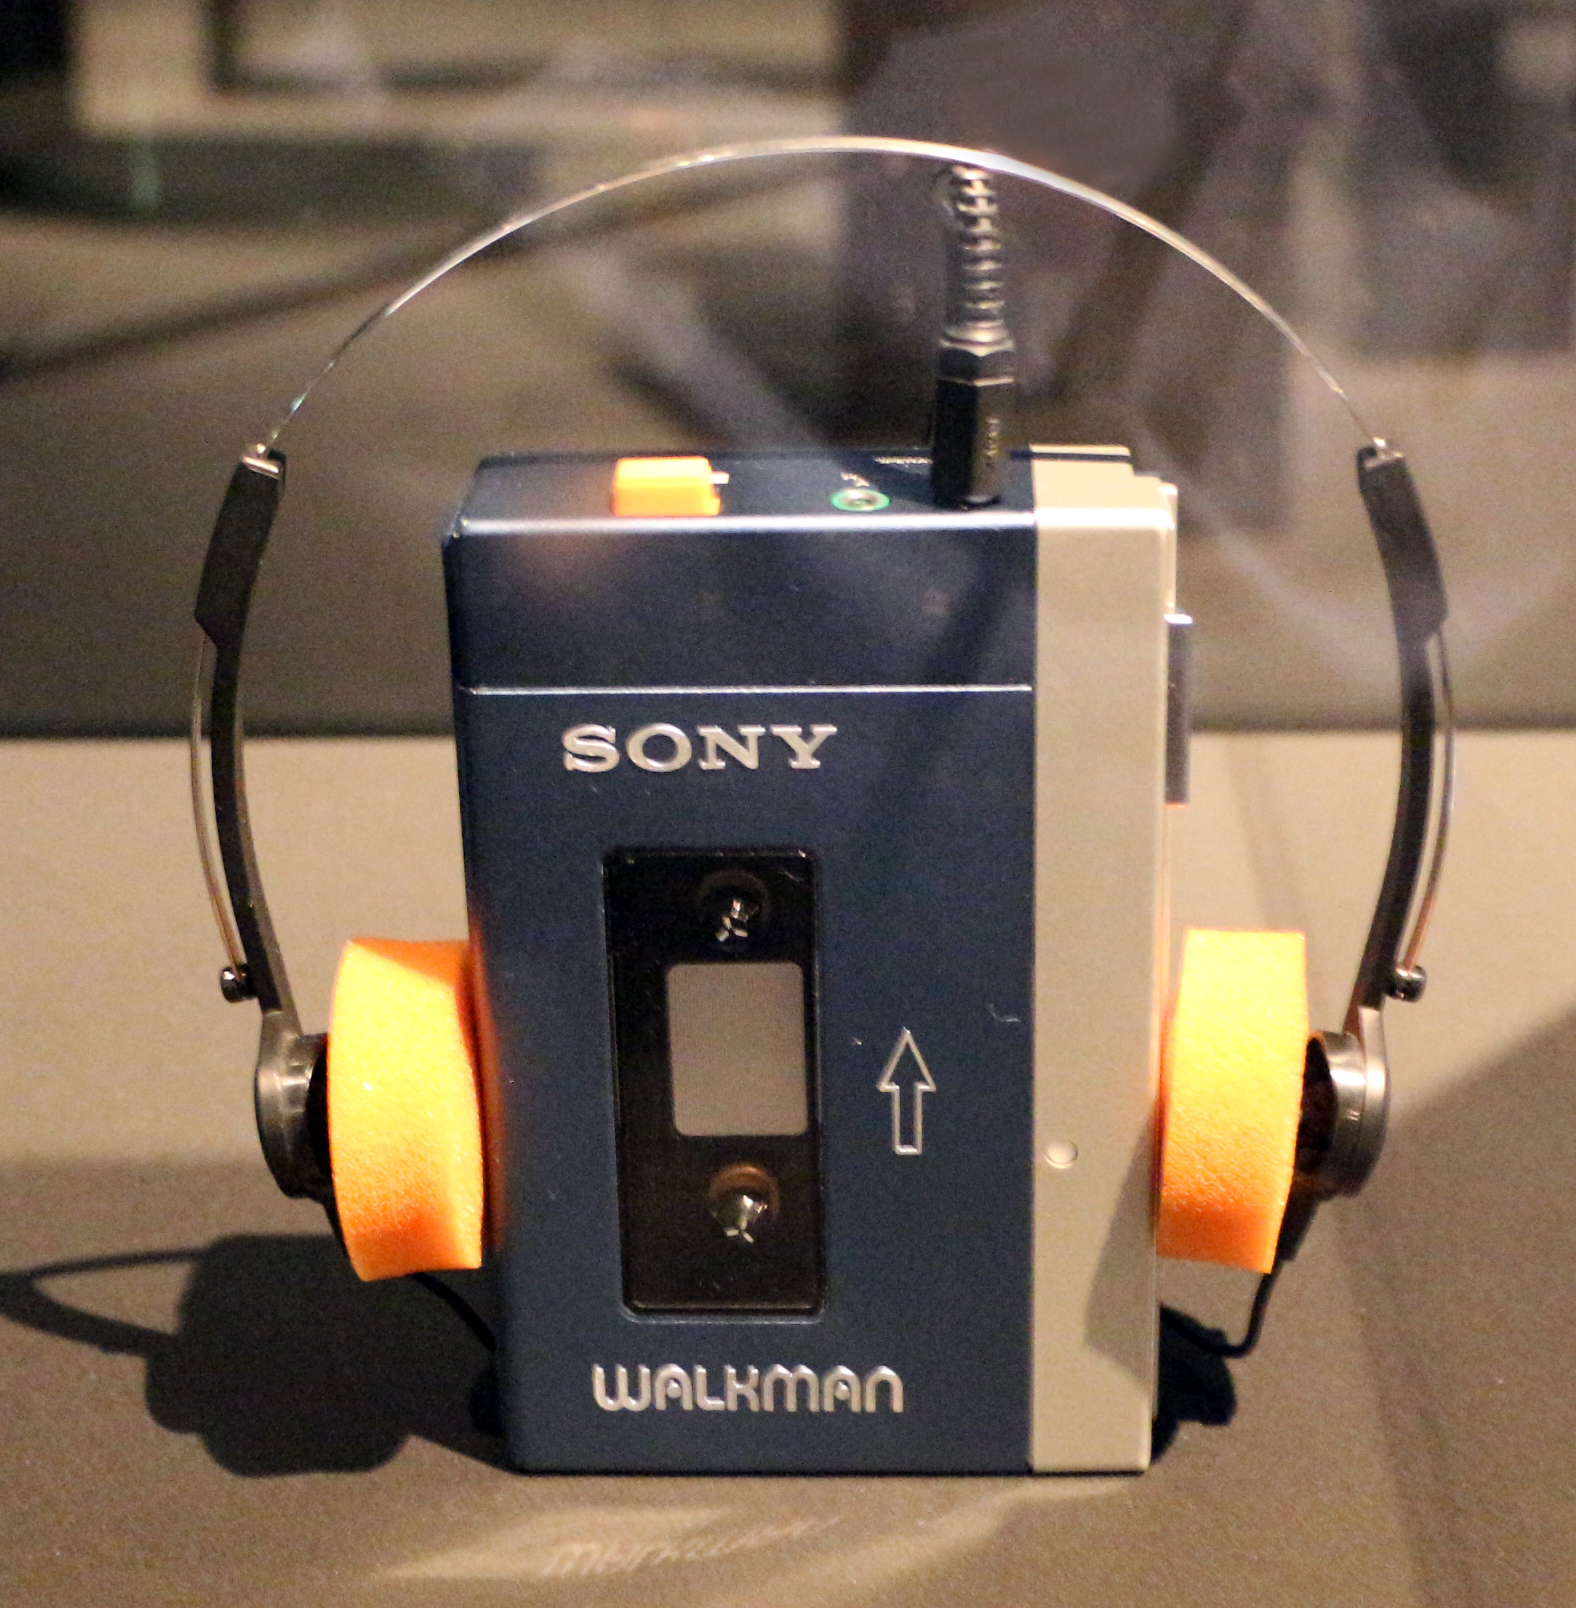 Sony,_walkman,_1979